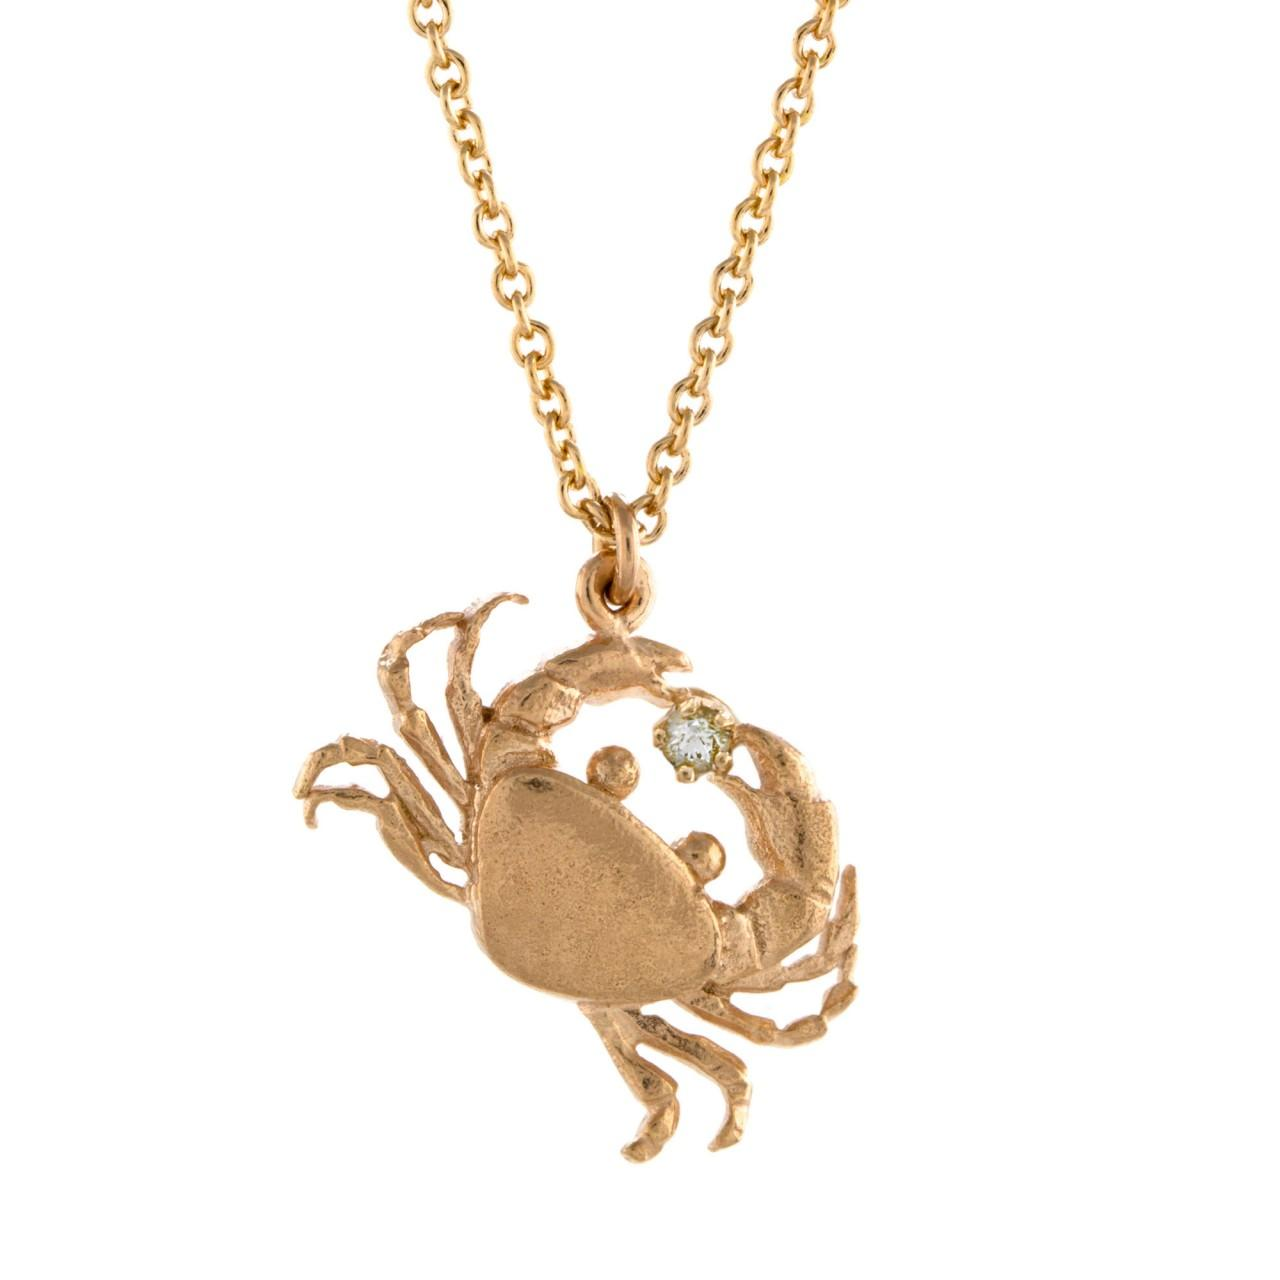 Rose gold plated with diamond cheeky crab necklace £195